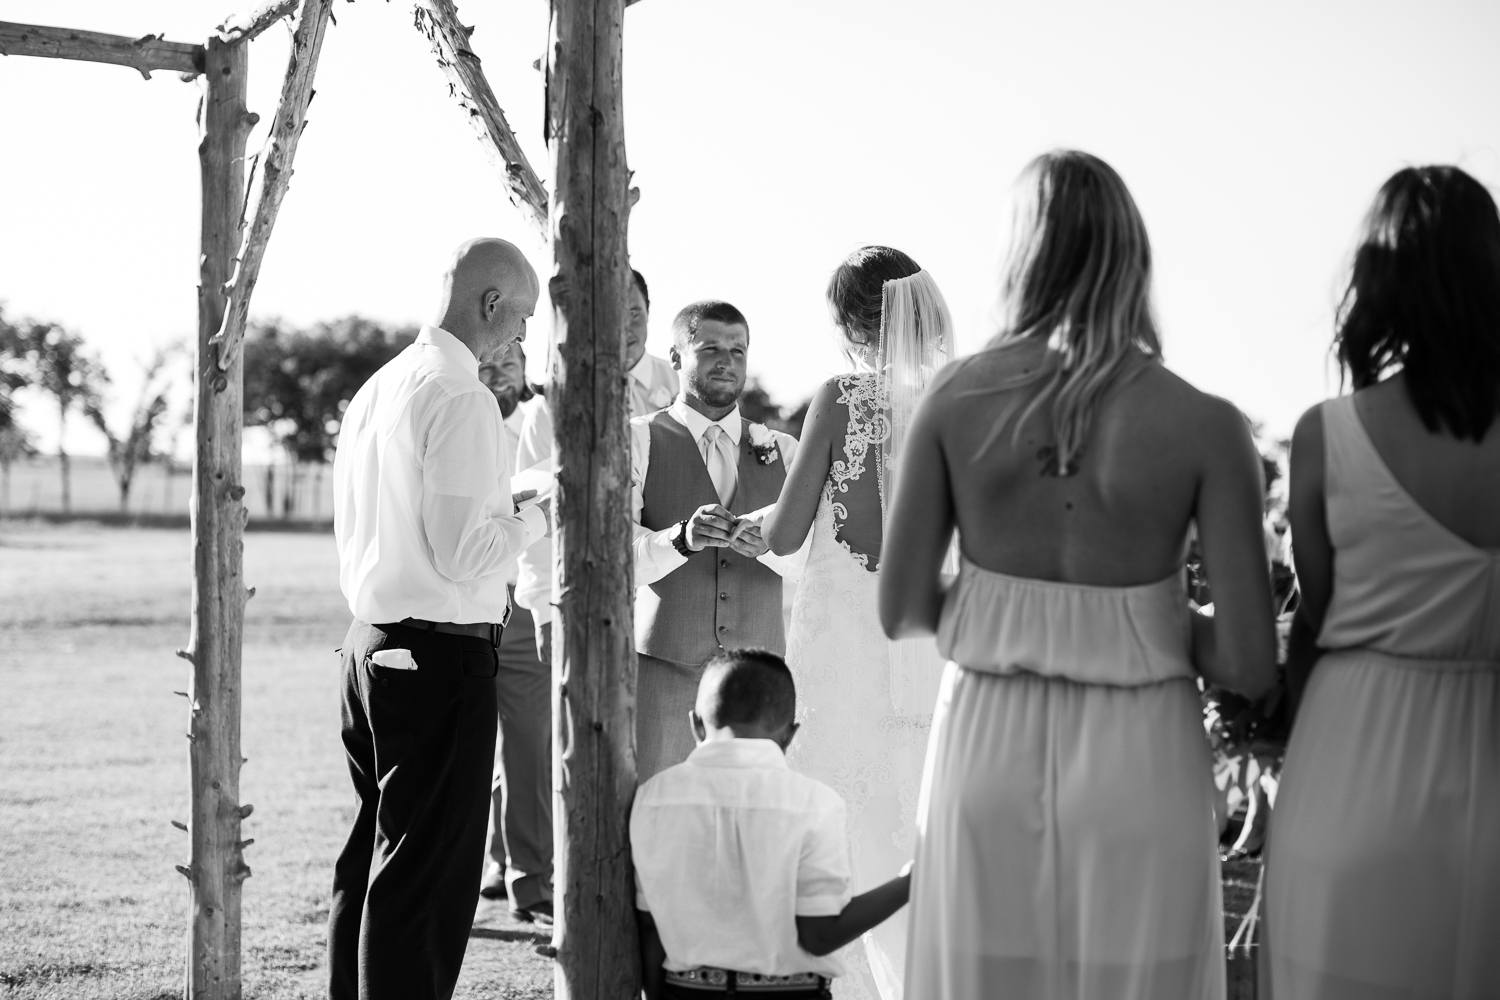 While Jordan stood in the center aisle, I ducked behind the bridesmaids to focus on the groom's face as he said his vows.